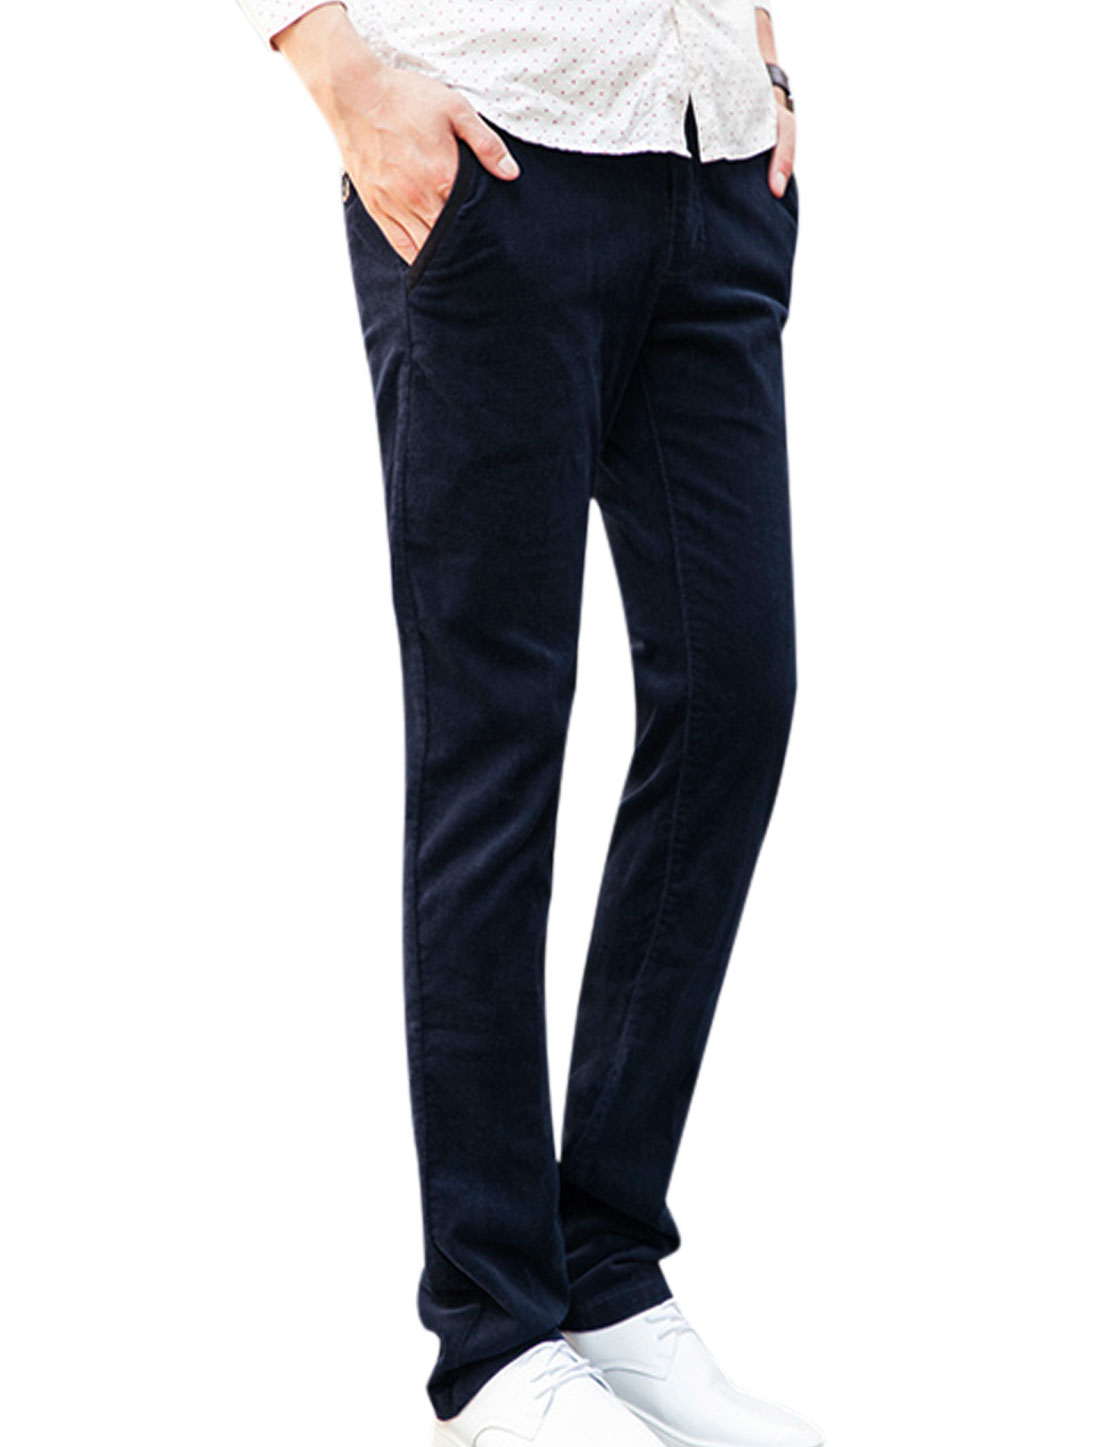 Leisure Zip Up Button Closed Navy Blue Corduroy Pants for Men W32